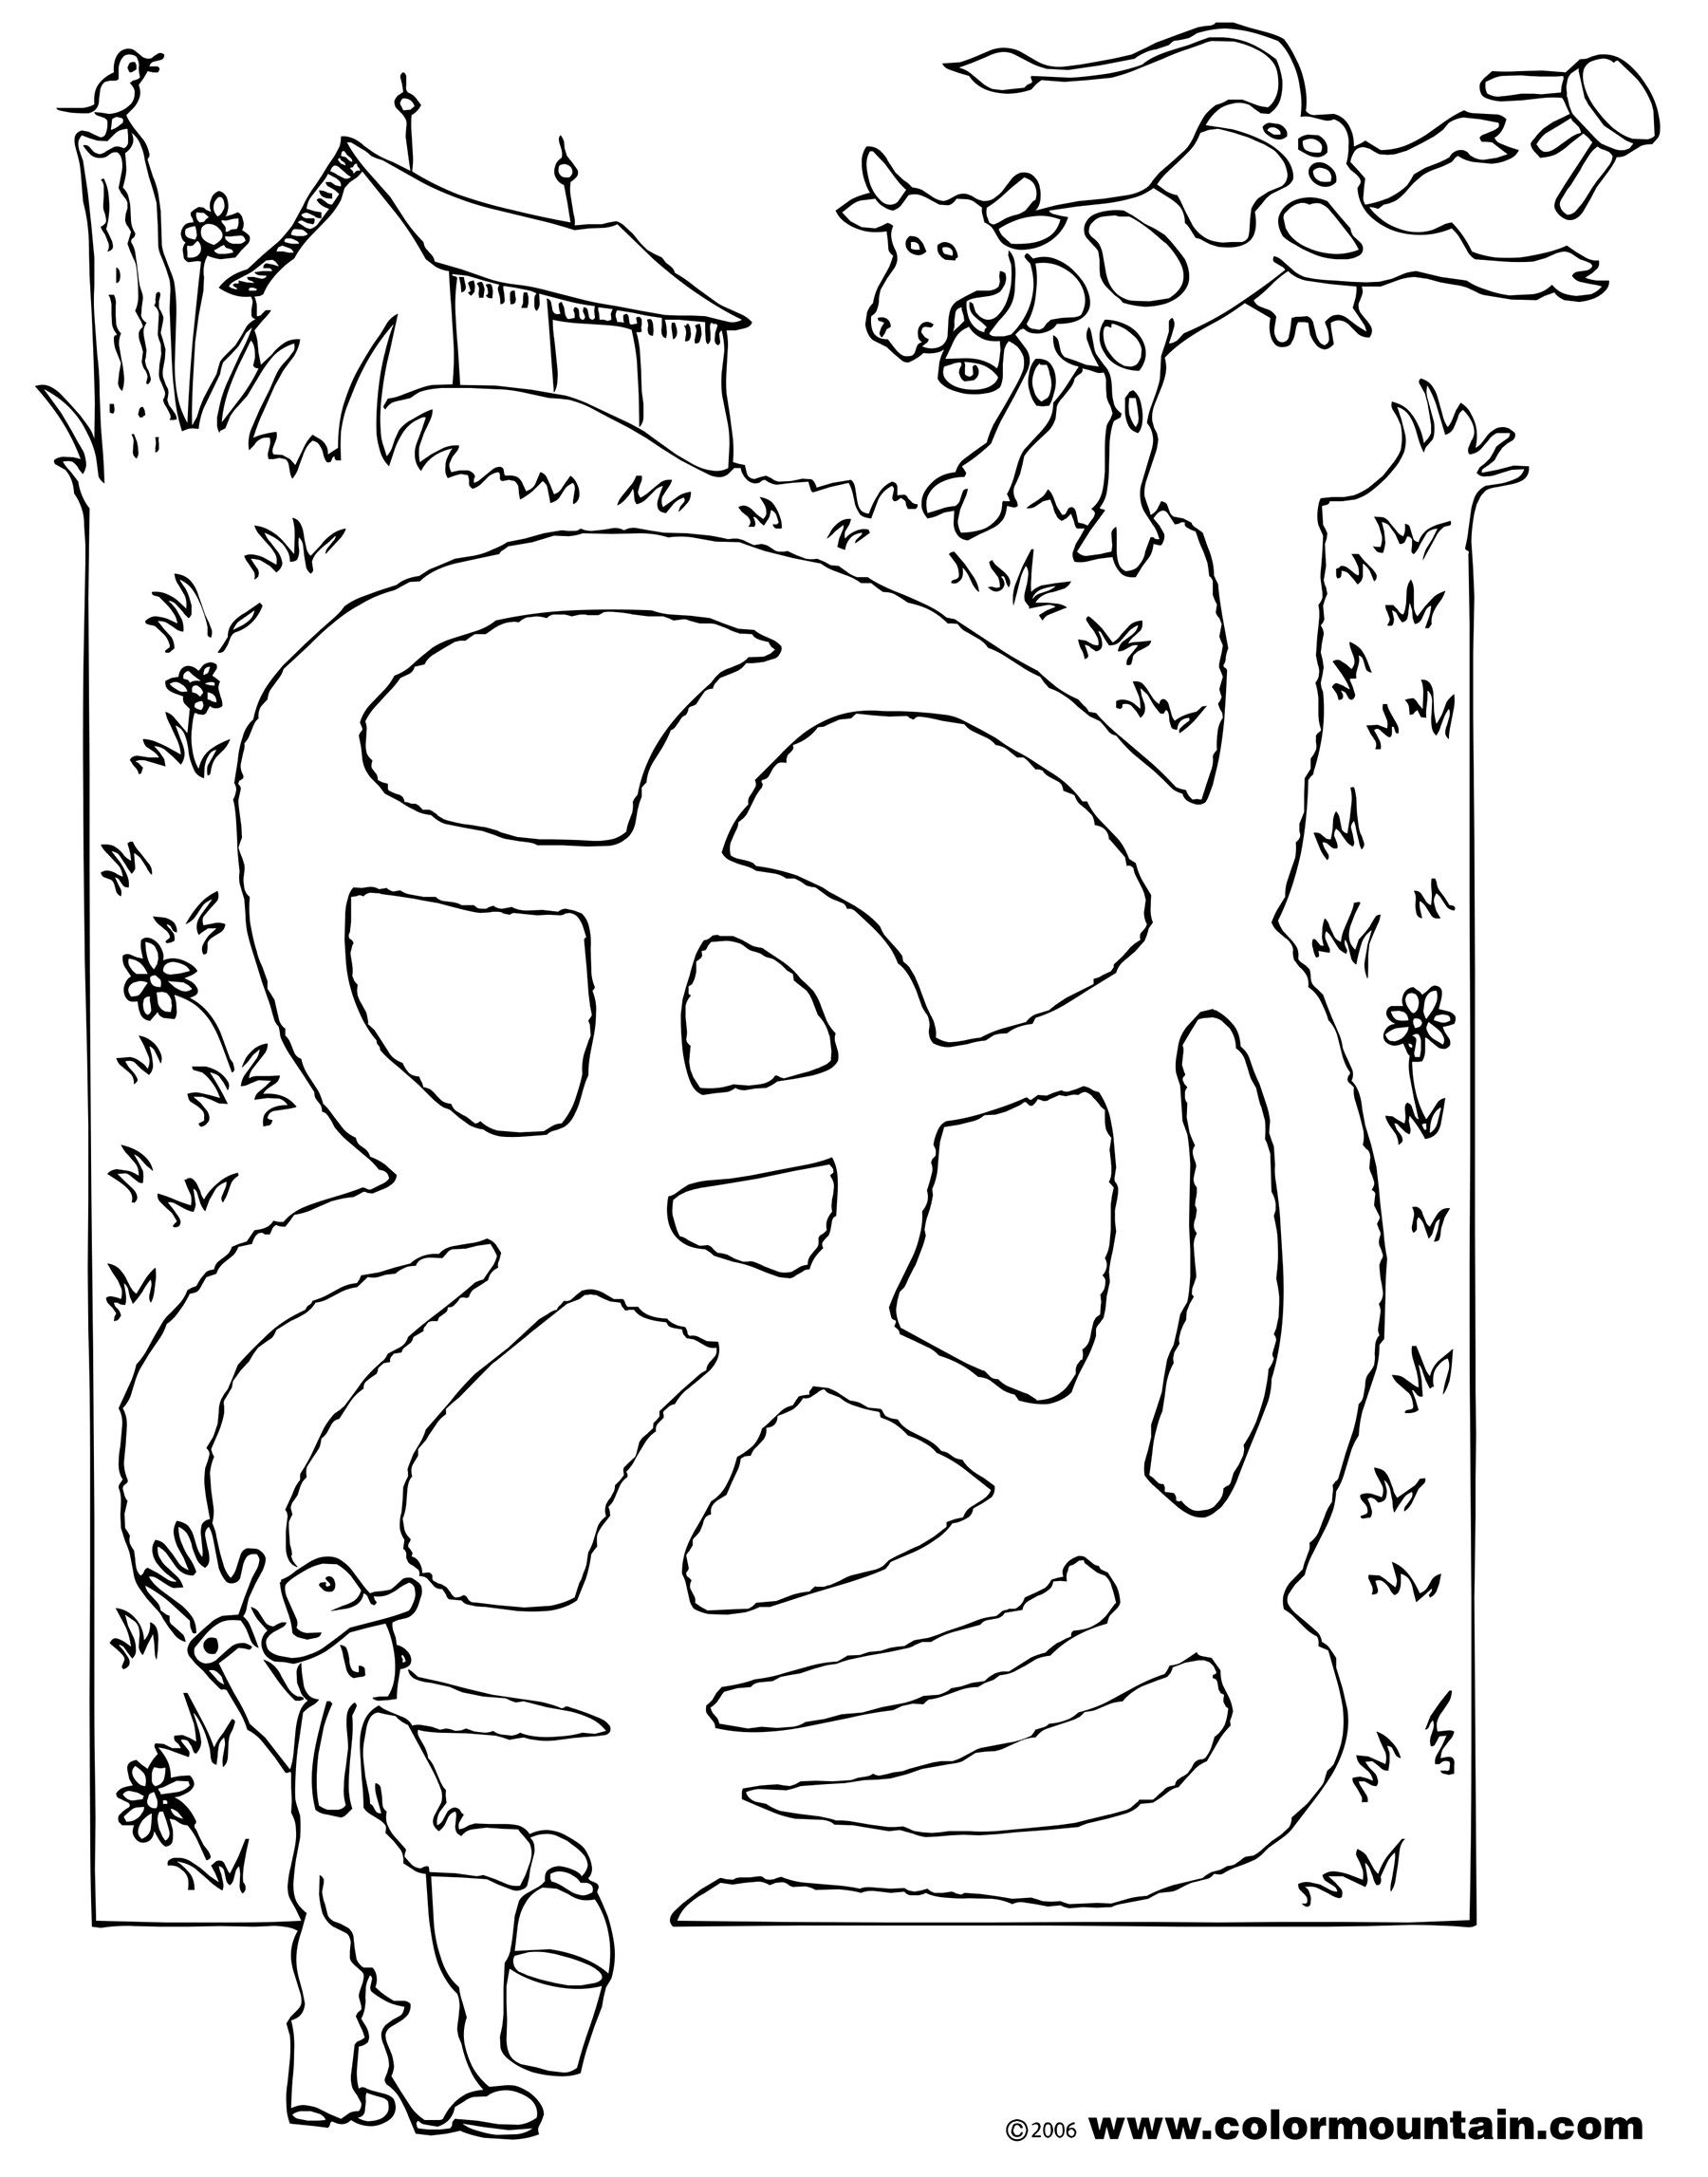 Pin by spetri.4kids on 4 Kids: Activity Pages | Coloring pages ...